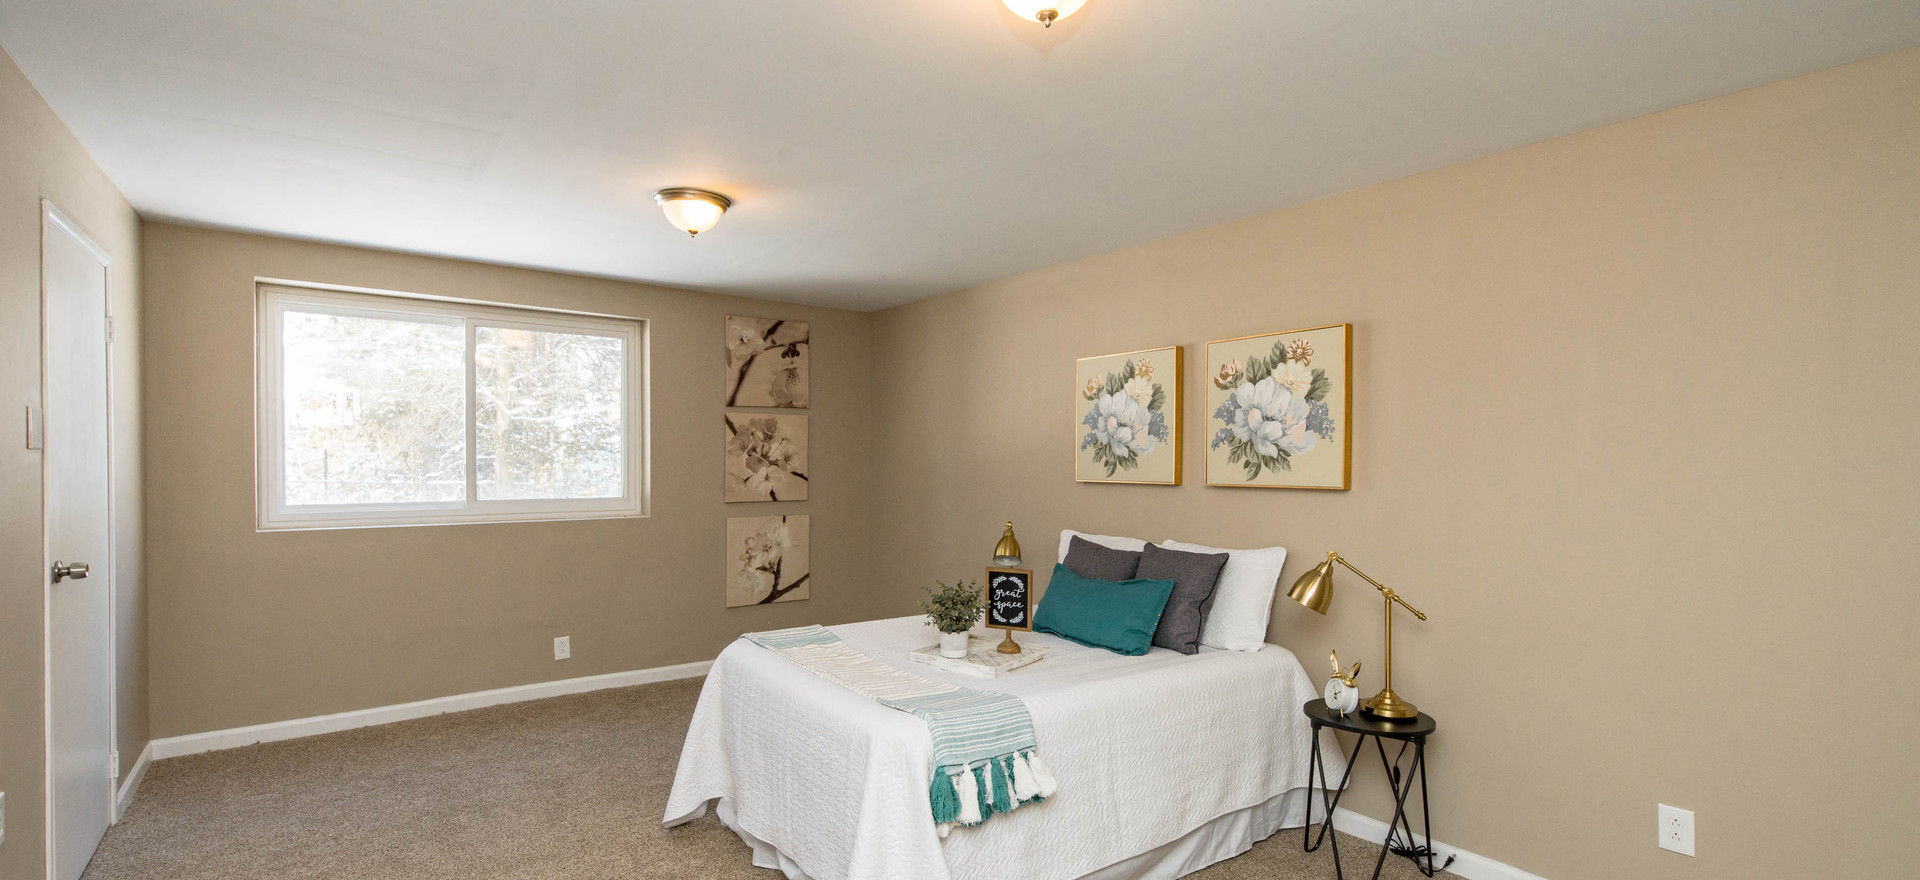 Guest Bedroom (Vacant Staged)